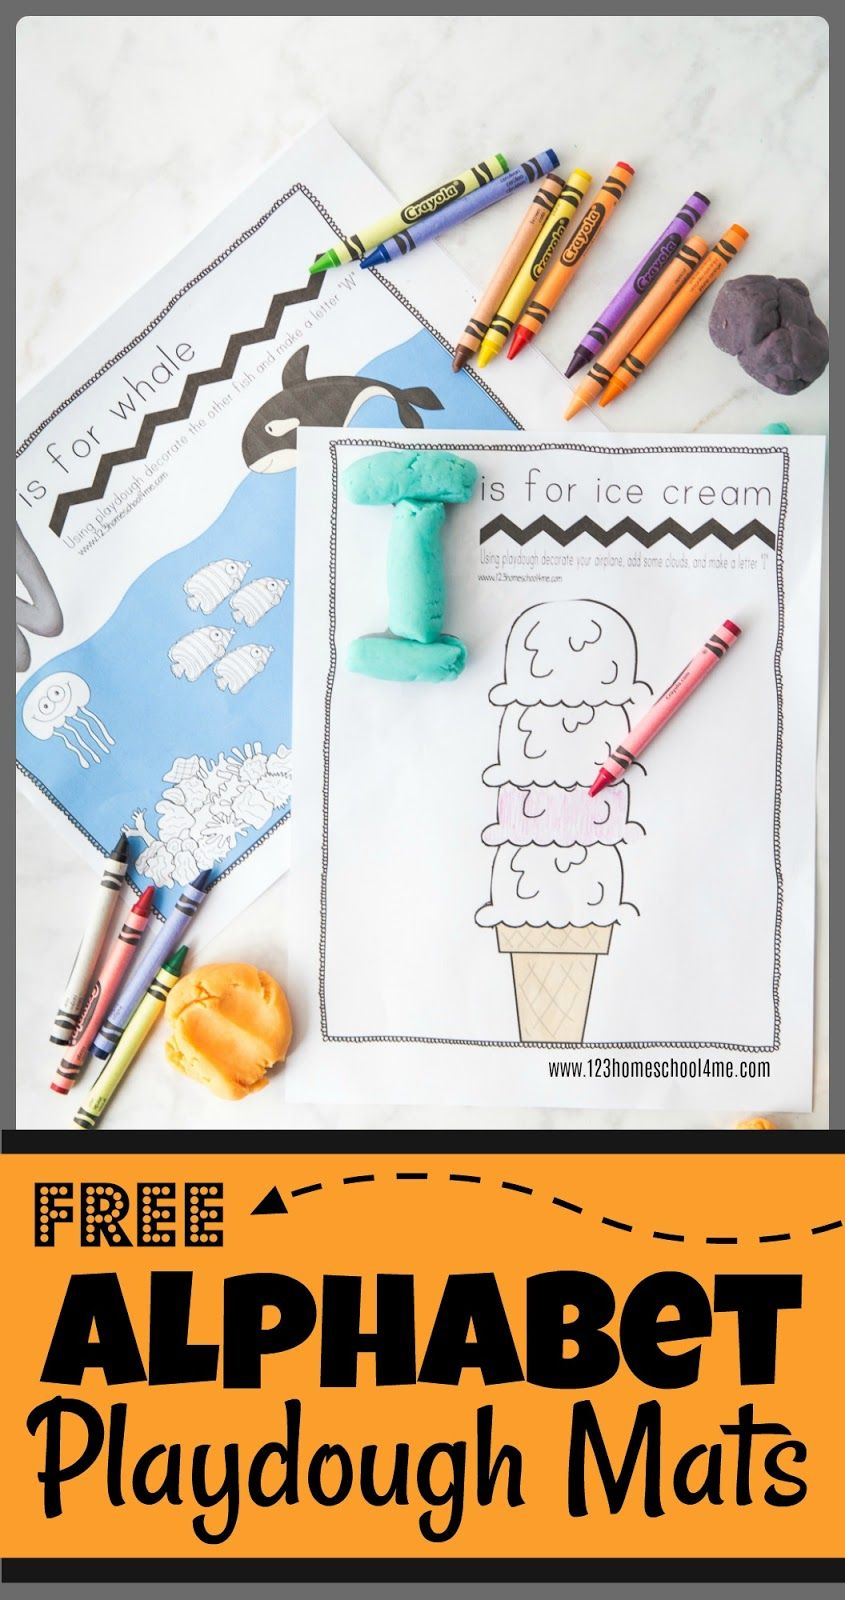 Free Alphabet Playdough Mats | Teach For The Future | Pinterest - Alphabet Playdough Mats Free Printable